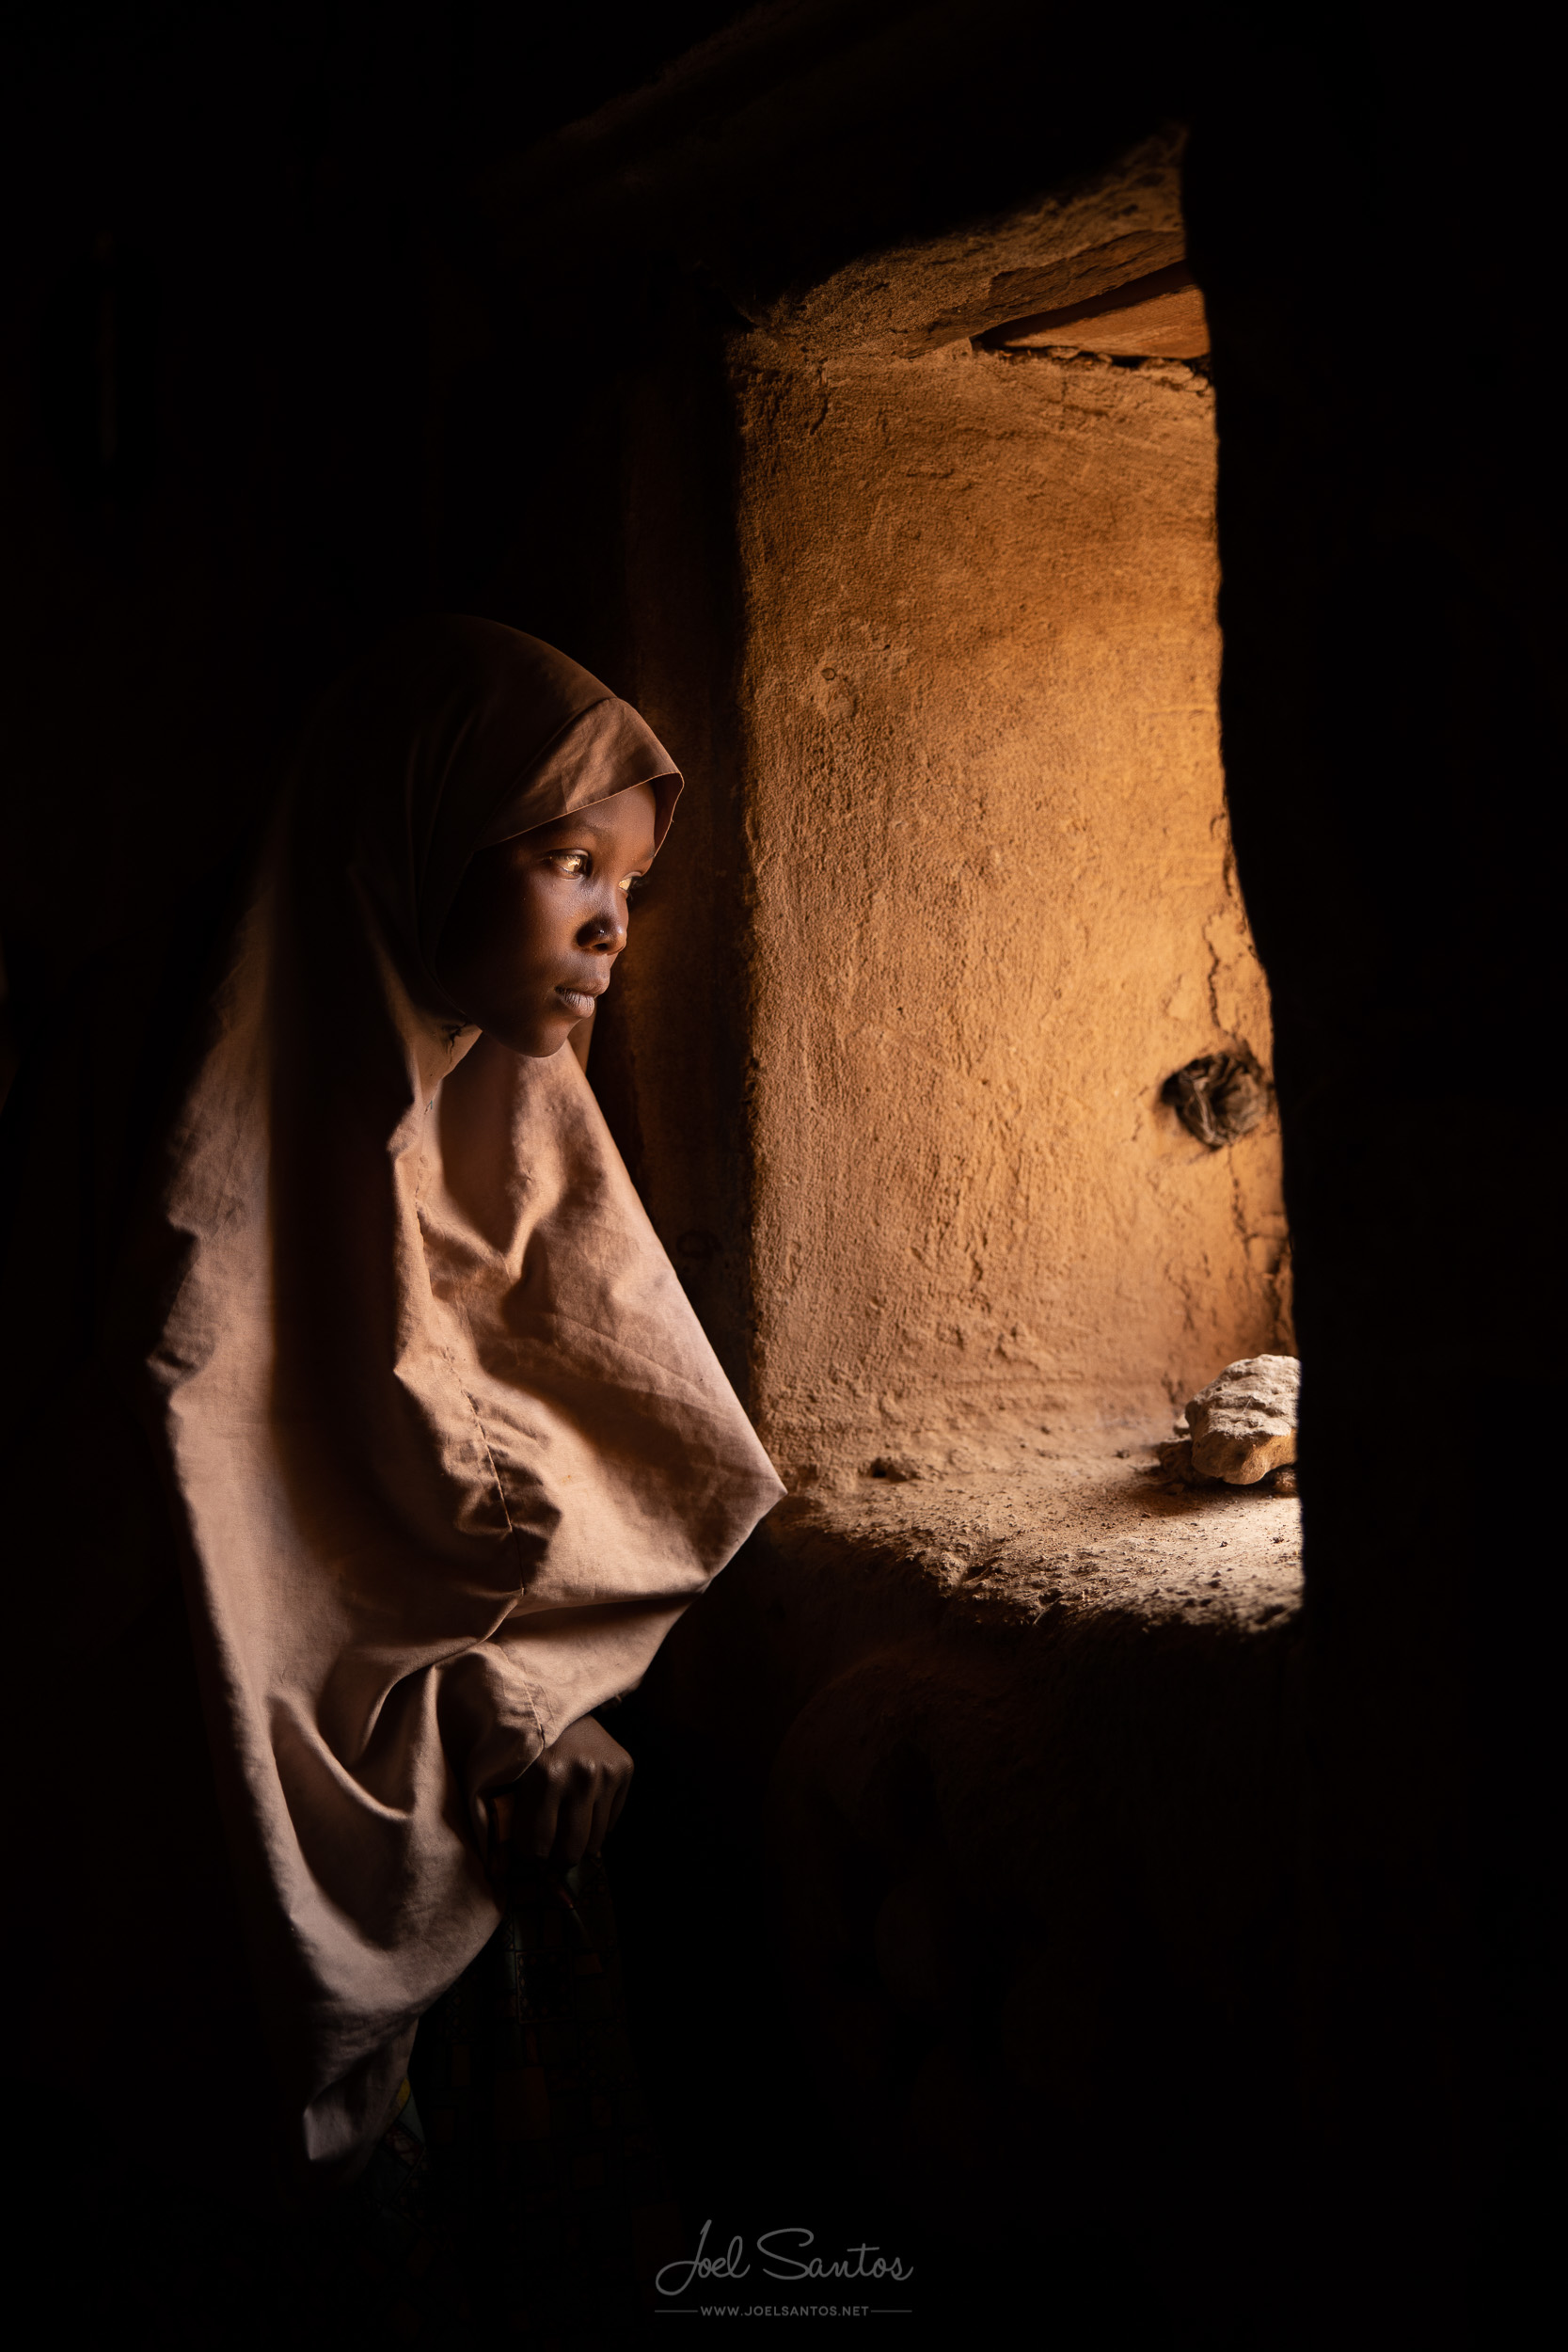 Housa Girl, Agadez, Niger